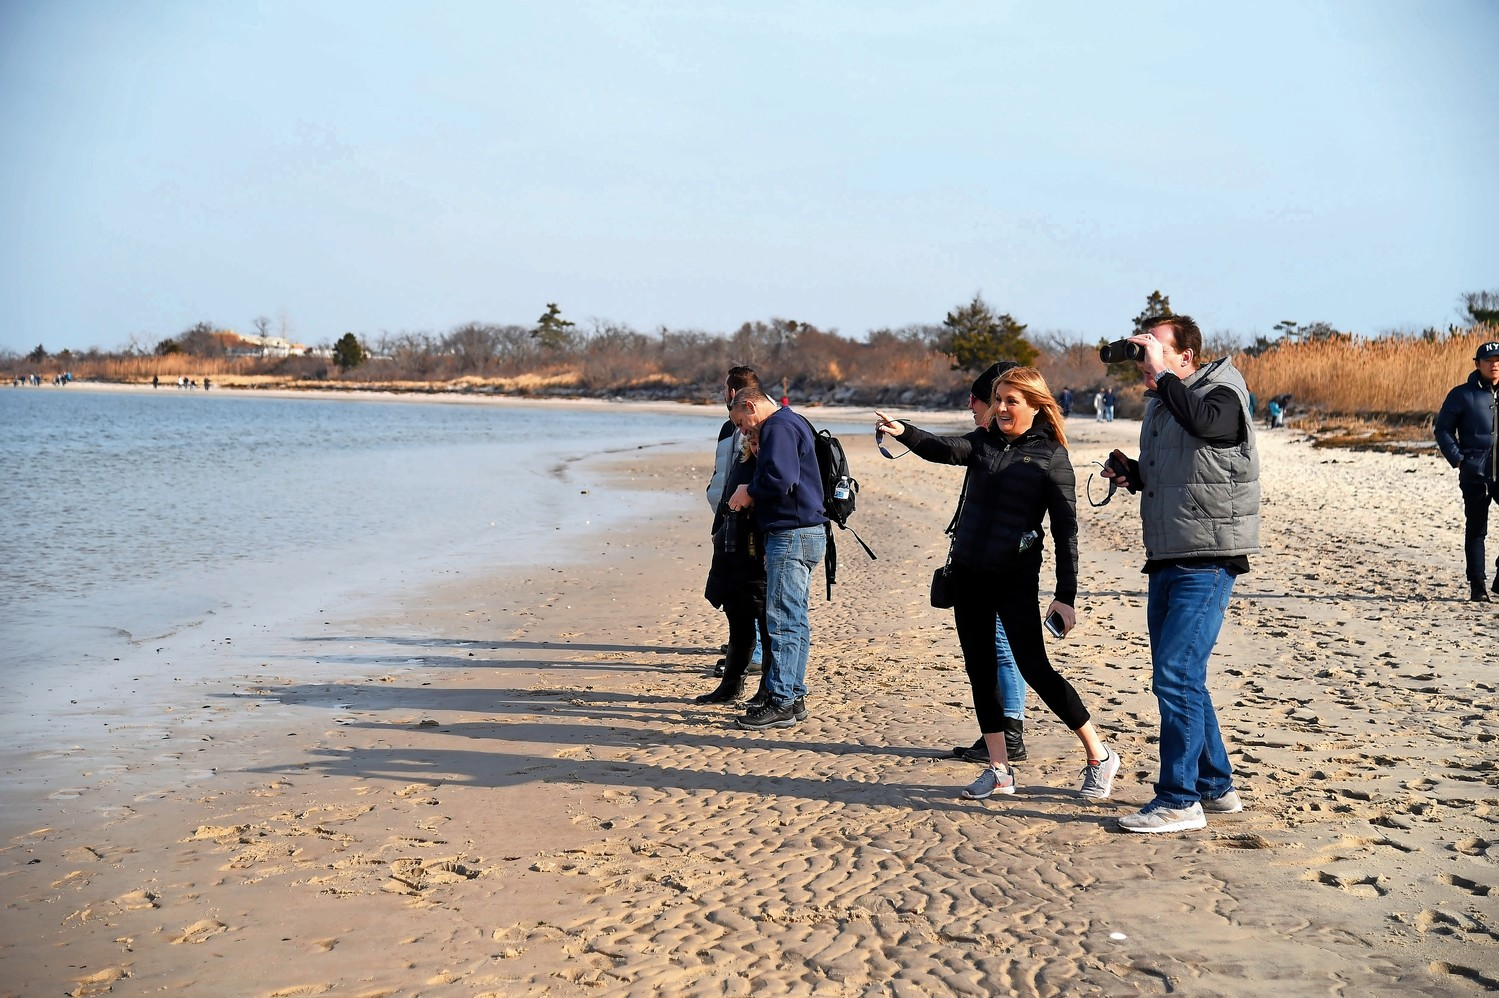 Participants looked for seals at Jones Beach Field 10 during the Jan. 21 walk.